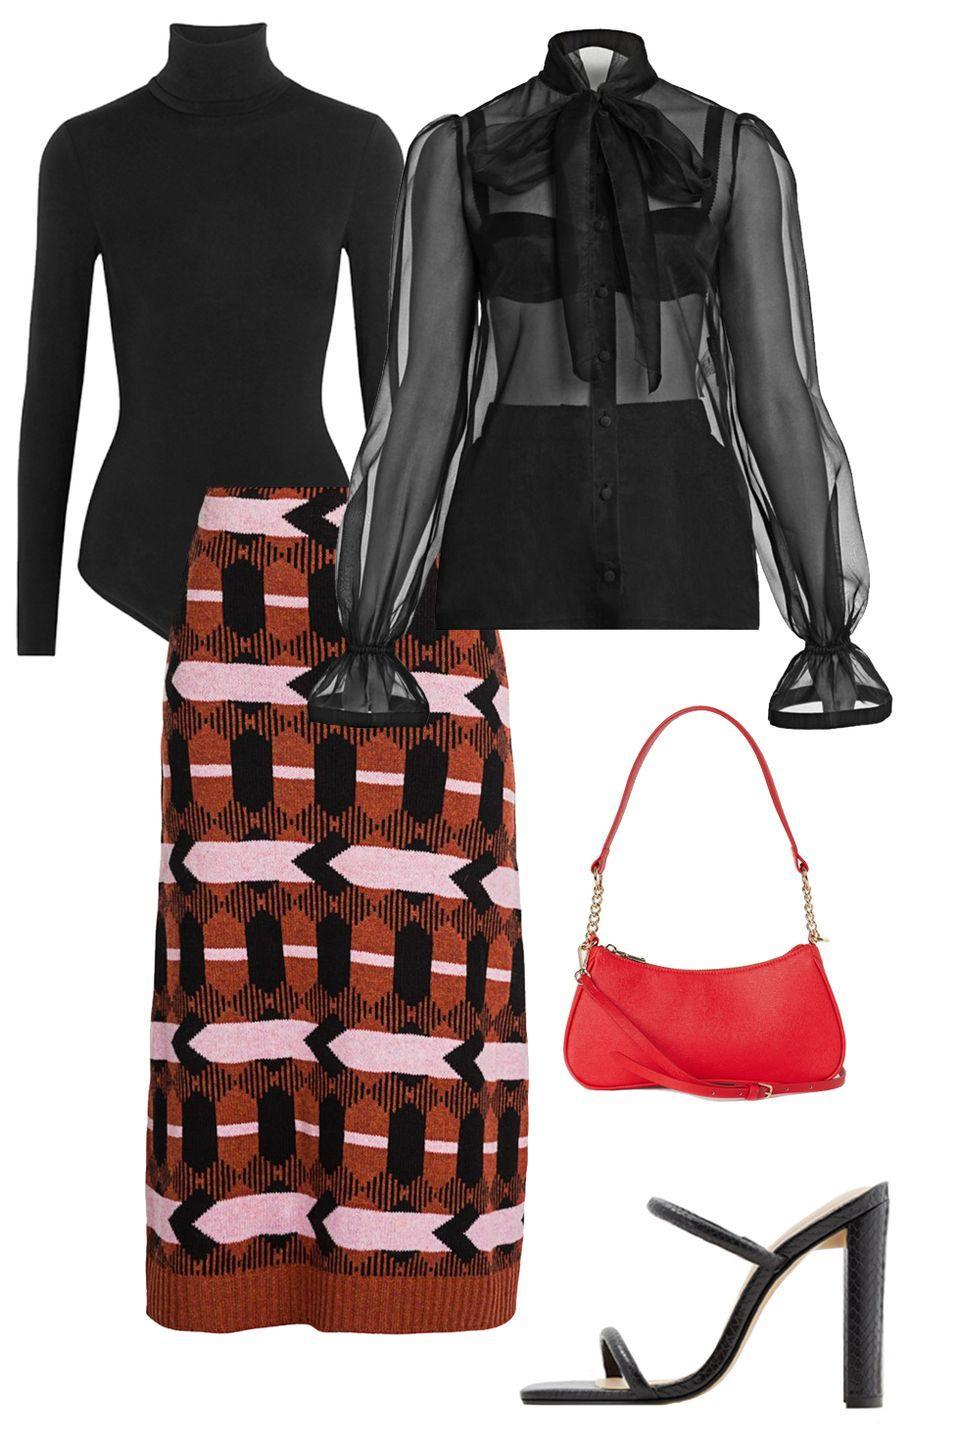 """<p>Need a solution for your favorite sheer blouse? Pop on this multi-tasking turtleneck to paint the town red.</p><p>Shop the pieces: <a href=""""https://www.net-a-porter.com/us/en/product/618045/Wolford/colorado-thong-bodysuit"""" rel=""""nofollow noopener"""" target=""""_blank"""" data-ylk=""""slk:Wolford Colorado Bodysuit"""" class=""""link rapid-noclick-resp""""><em>Wolford Colorado Bodysuit</em></a>; $250, <em><a href=""""https://www.farfetch.com/shopping/women/dolce-gabbana-pussy-bow-sheer-blouse-item-14718423.aspx?fsb=1&size=22&storeid=13098&utm_source=google&utm_medium=cpc&utm_keywordid=119356666&utm_shoppingproductid=14718423-5254&pid=google_search&af_channel=Search&c=2069920048&af_c_id=2069920048&af_siteid=&af_keywords=aud-369354889807:pla-413546134302&af_adset_id=75217631214&af_ad_id=257034989971&af_sub1=119356666&af_sub5=14718423-5254&is_retargeting=true&shopping=yes&gclid=Cj0KCQiAj9iBBhCJARIsAE9qRtAw7L9beNy_gv9B8qdggnymspA5f0gpYL4fKfbRWOB8BeA96K8Atp8aAskLEALw_wcB"""" rel=""""nofollow noopener"""" target=""""_blank"""" data-ylk=""""slk:Dolce & Gabbanna Top"""" class=""""link rapid-noclick-resp"""">Dolce & Gabbanna Top</a></em>; $585 (similar), <a href=""""https://www.farfetch.com/shopping/women/prada-punto-stoffa-knit-skirt-item-15093211.aspx?storeid=11241"""" rel=""""nofollow noopener"""" target=""""_blank"""" data-ylk=""""slk:Prada Skirt"""" class=""""link rapid-noclick-resp""""><em>Prada Skirt</em></a>; $3,650 (similar); <em><a href=""""https://www.farfetch.com/shopping/women/dolce-gabbana-pussy-bow-sheer-blouse-item-14718423.aspx?fsb=1&size=22&storeid=13098&utm_source=google&utm_medium=cpc&utm_keywordid=119356666&utm_shoppingproductid=14718423-5254&pid=google_search&af_channel=Search&c=2069920048&af_c_id=2069920048&af_siteid=&af_keywords=aud-369354889807:pla-413546134302&af_adset_id=75217631214&af_ad_id=257034989971&af_sub1=119356666&af_sub5=14718423-5254&is_retargeting=true&shopping=yes&gclid=Cj0KCQiAj9iBBhCJARIsAE9qRtAw7L9beNy_gv9B8qdggnymspA5f0gpYL4fKfbRWOB8BeA96K8Atp8aAskLEALw_wcB"""" rel=""""nofollow noopener"""" target=""""_blank"""" data-ylk=""""slk:Al"""